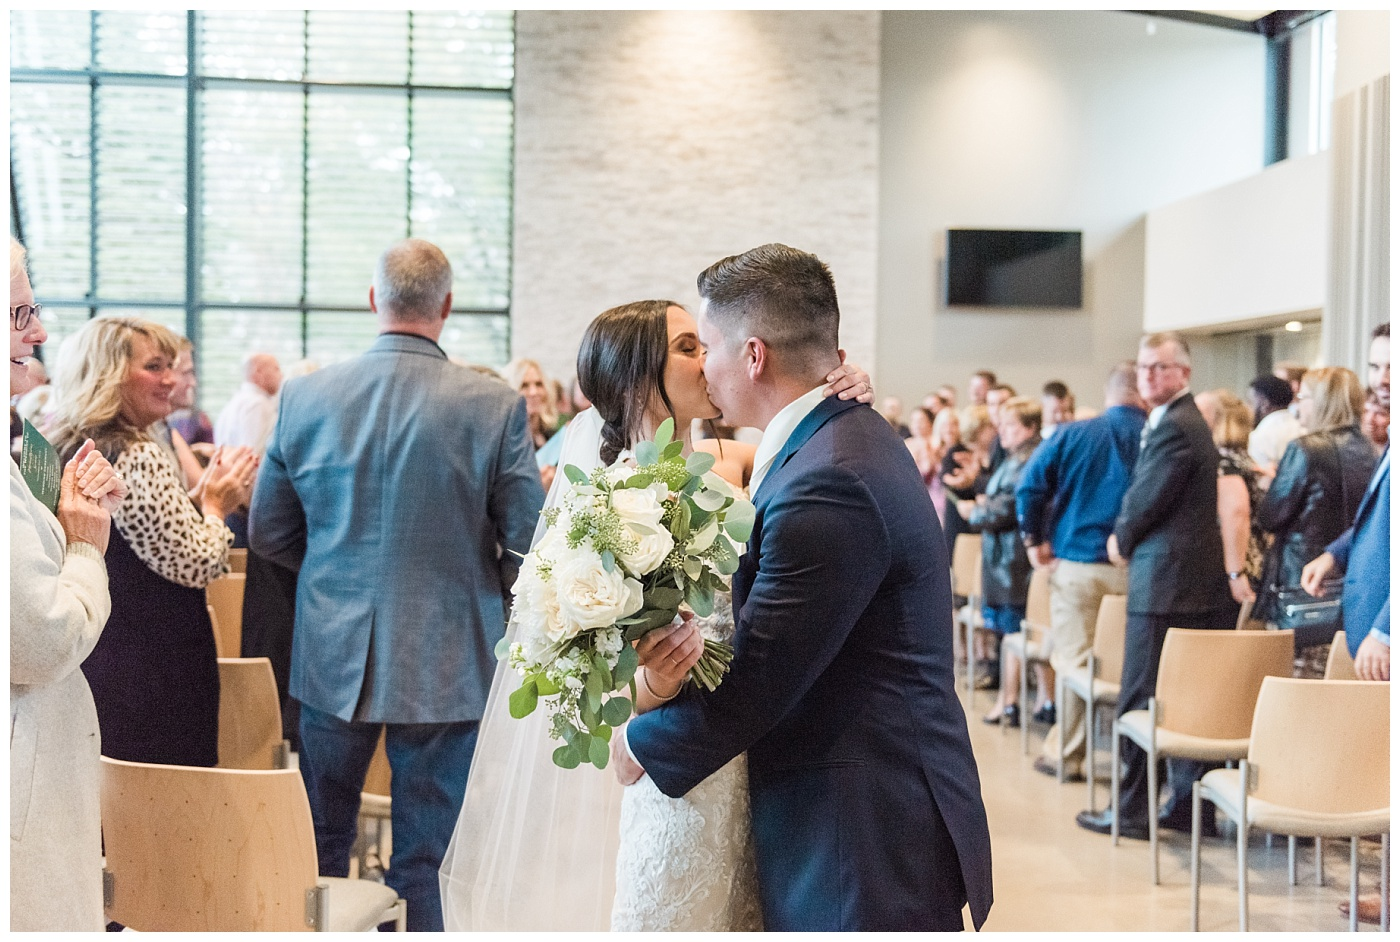 Stephanie Marie Photography Unitarian Universalist Society Church Ceremony Hotel Kirkwood Reception Cedar Rapids Iowa City Wedding Photographer Sean Madison Moore_0043.jpg